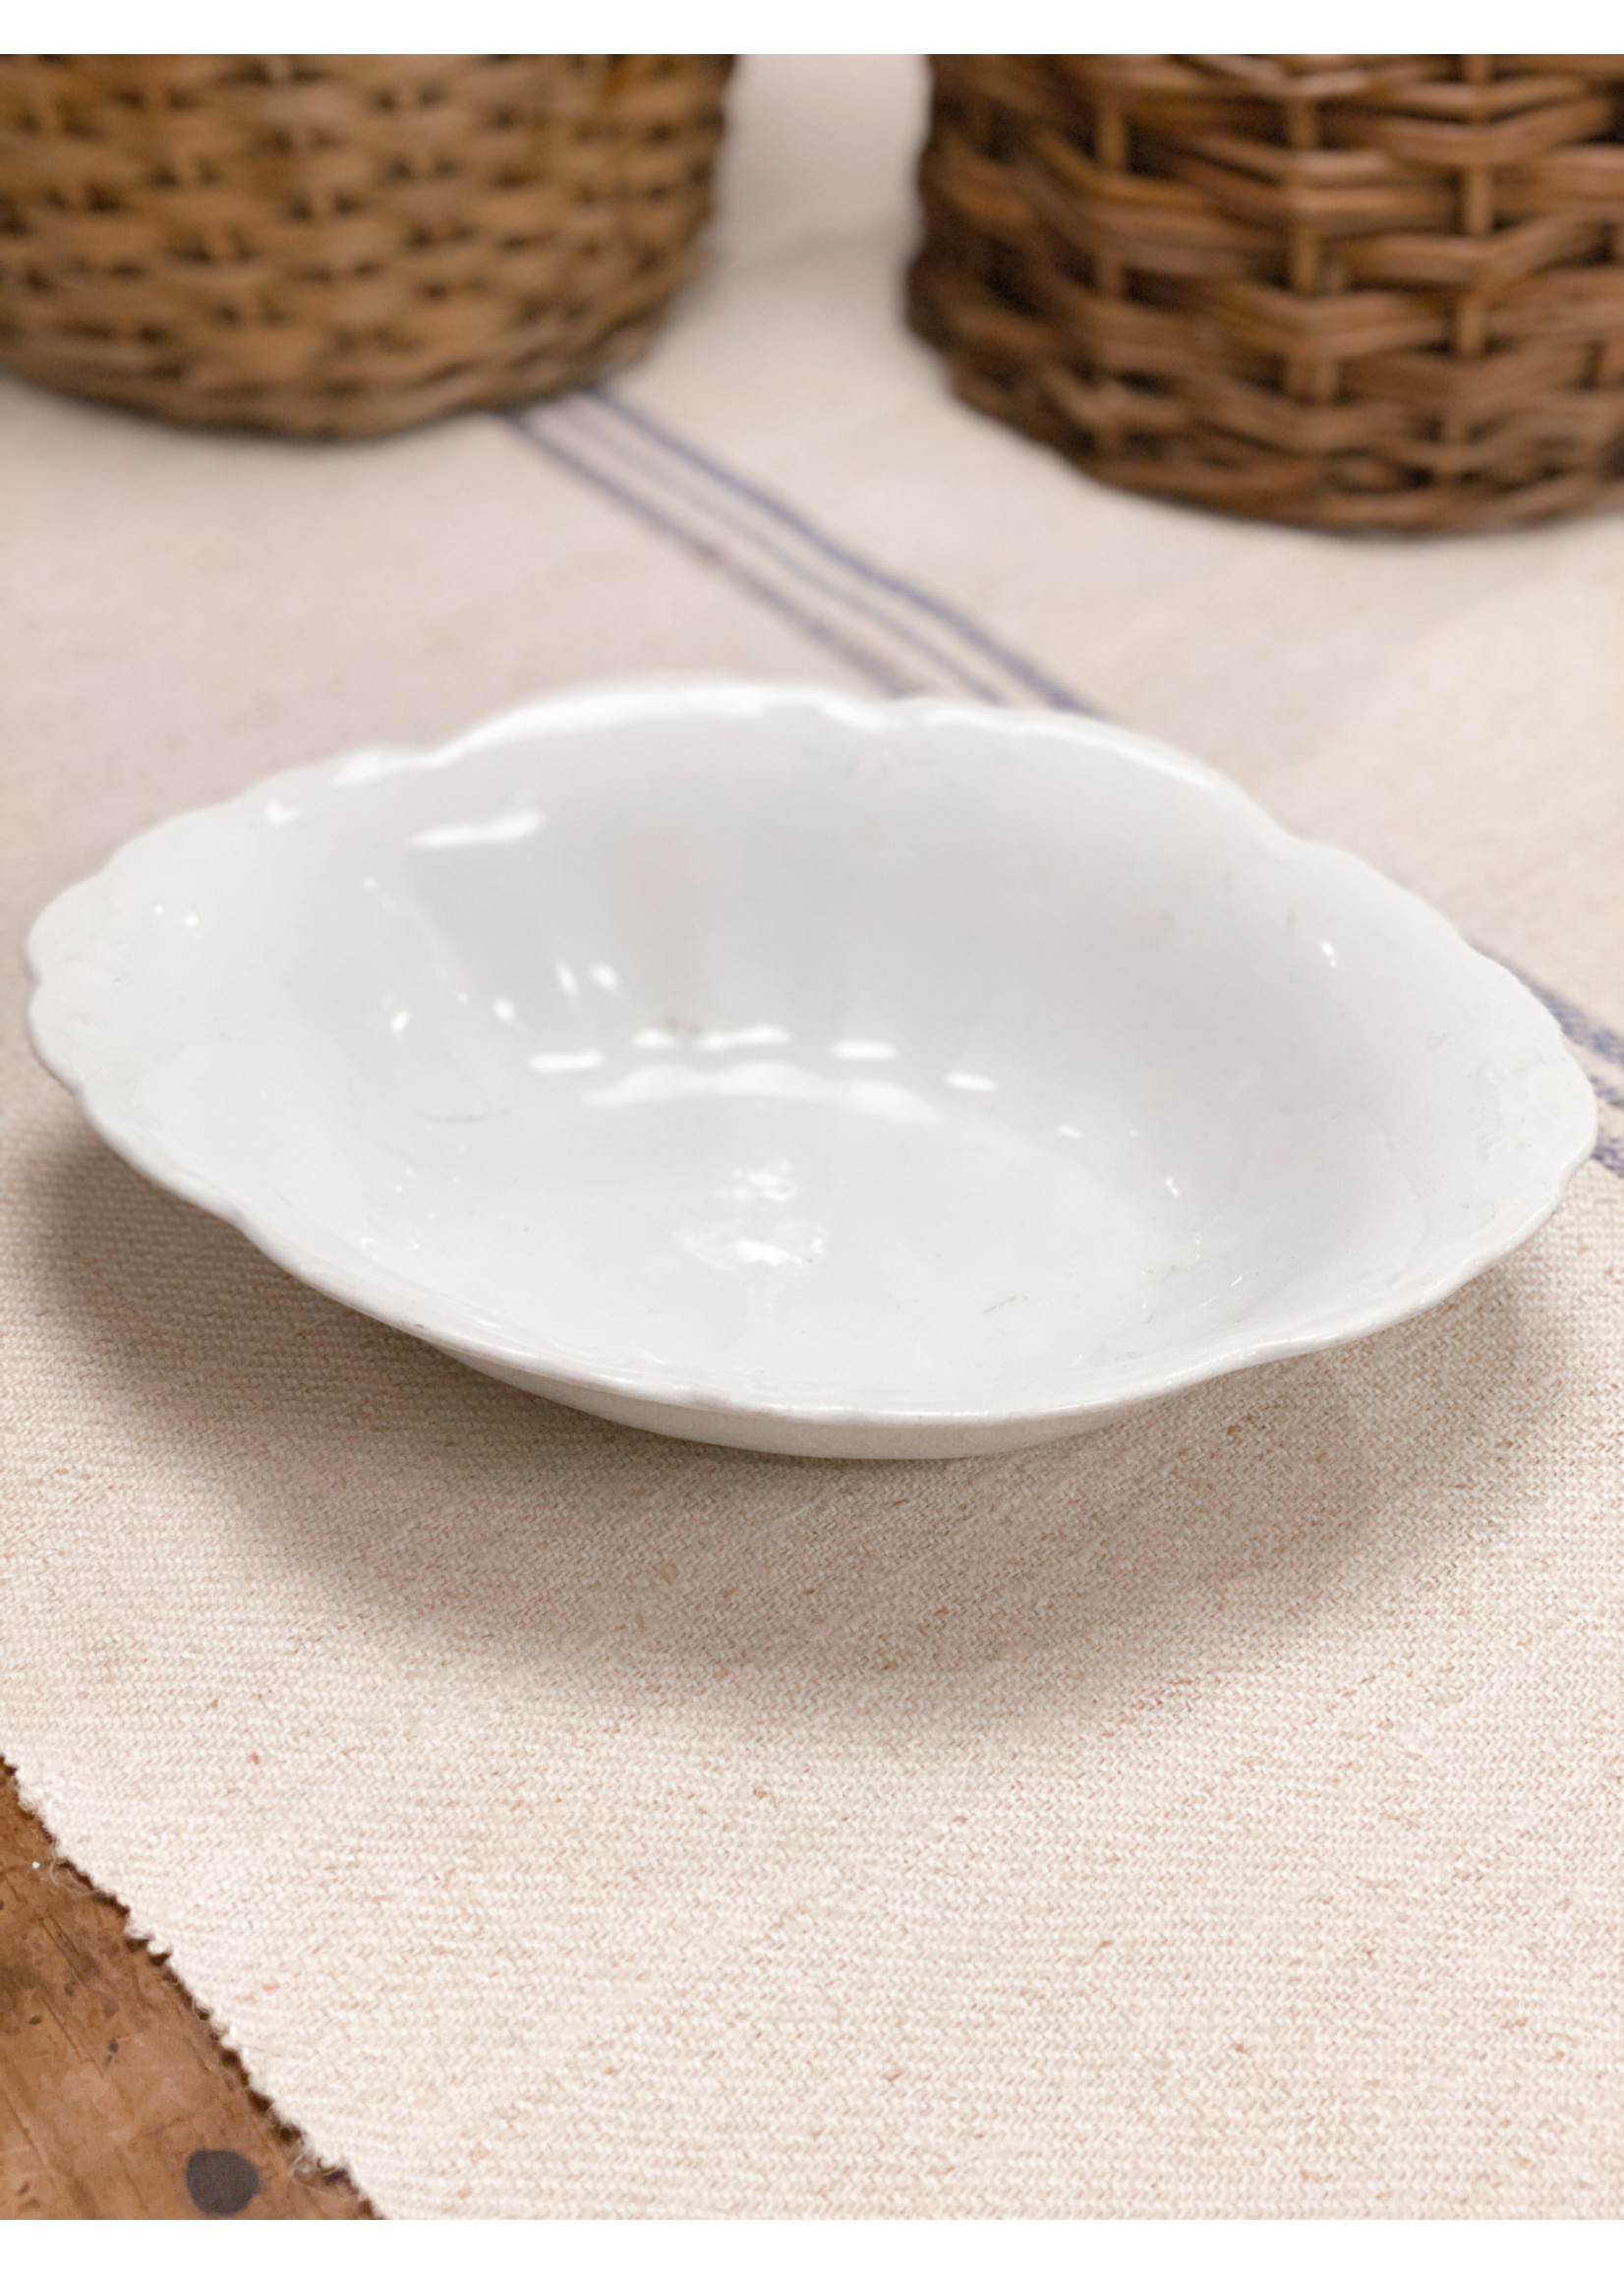 Antique Antique Ironstone Oval Embossed Serving Bowl